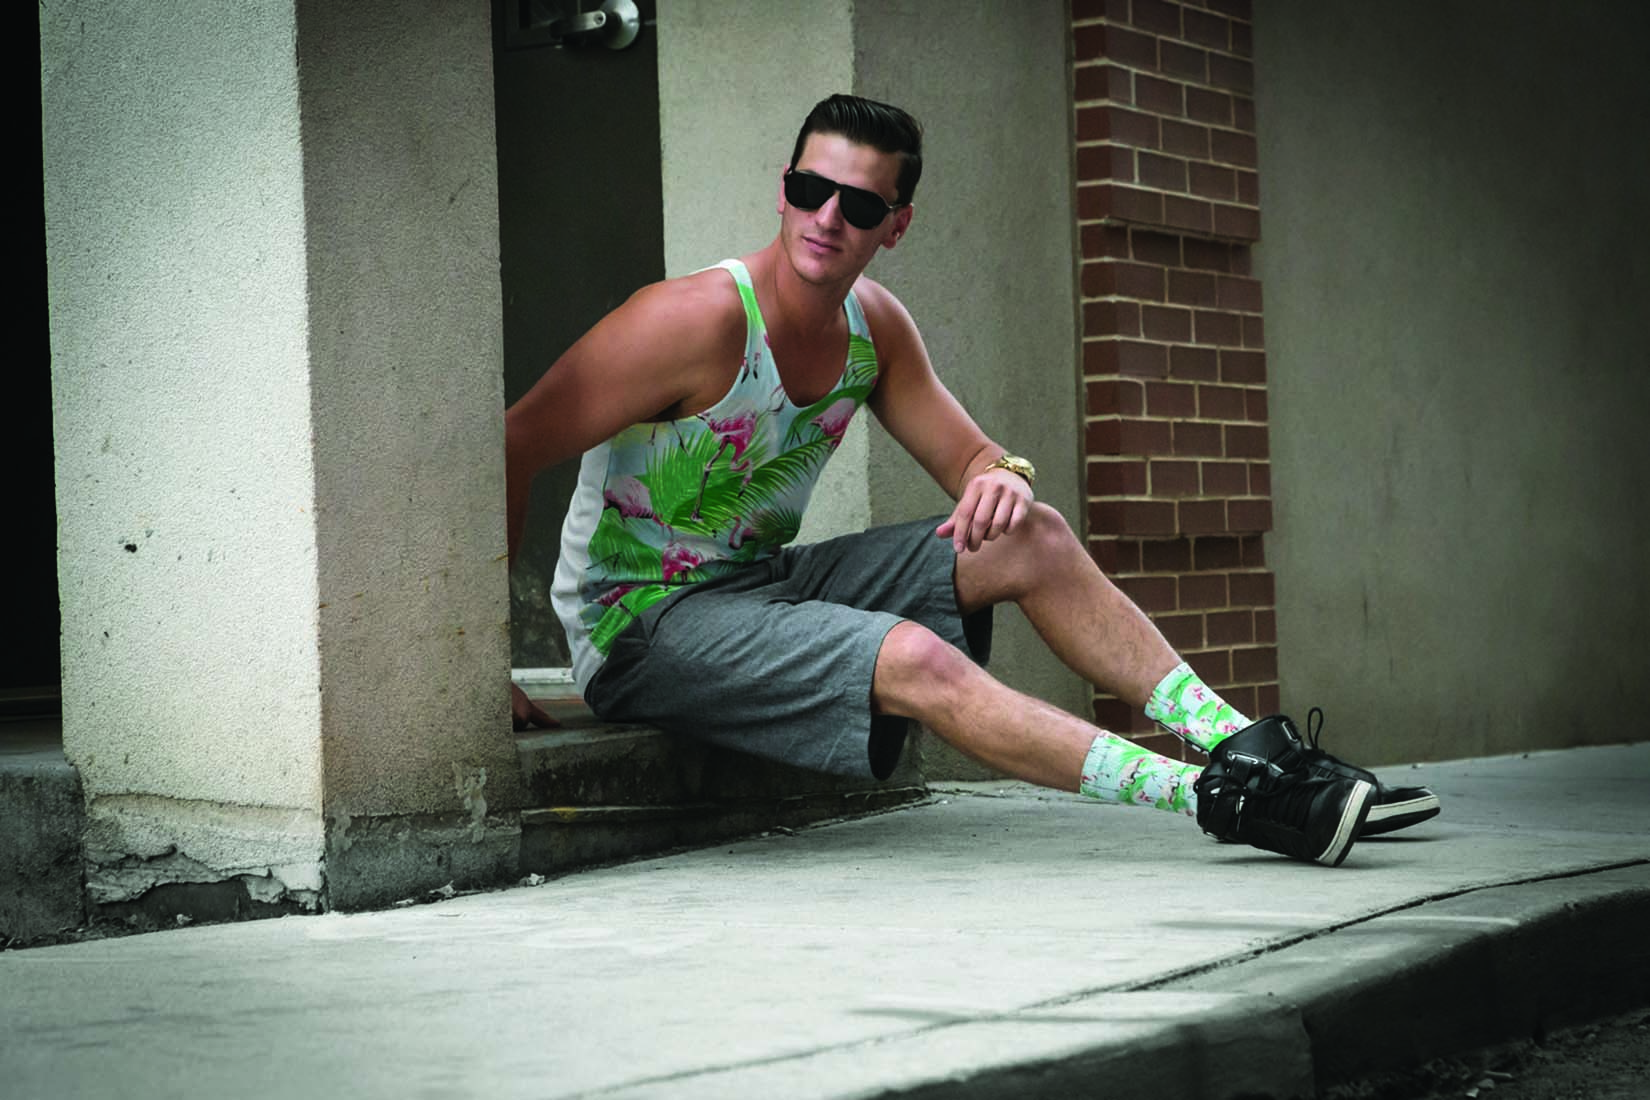 Adam Sinz '13, designer and founder of Amped Apparel, models his products.